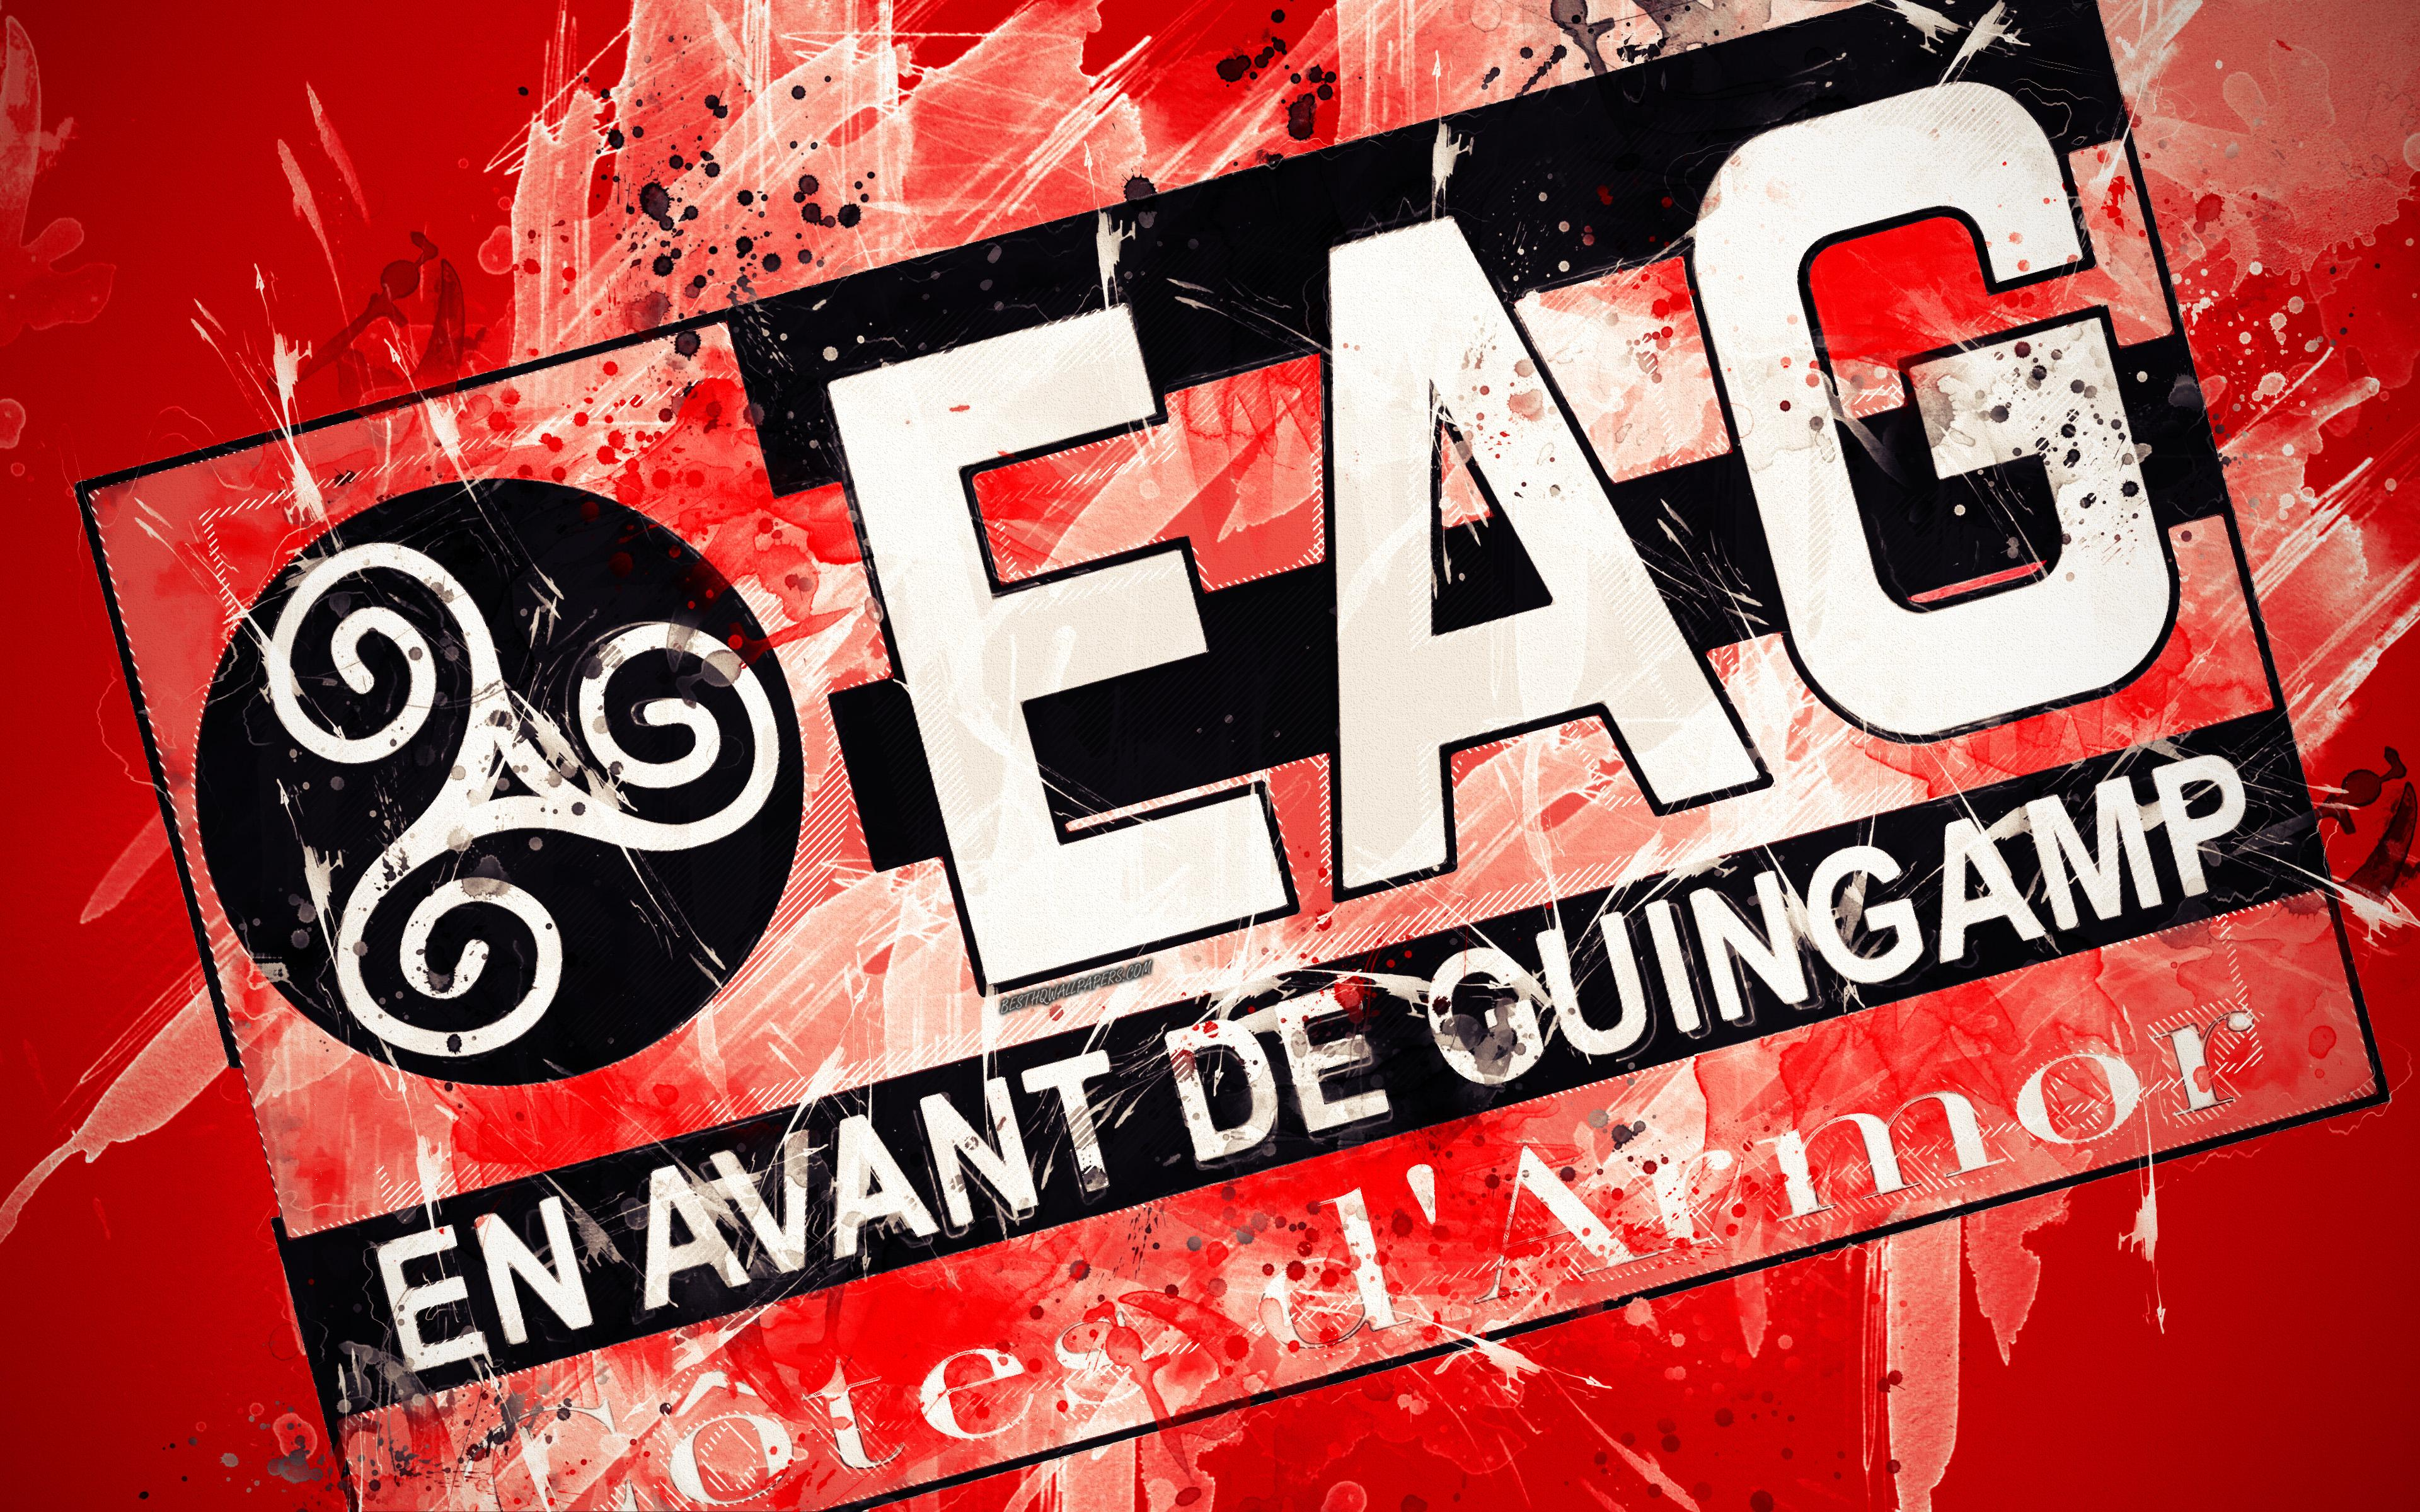 Download wallpapers En Avant de Guingamp, 4k, paint art, creative